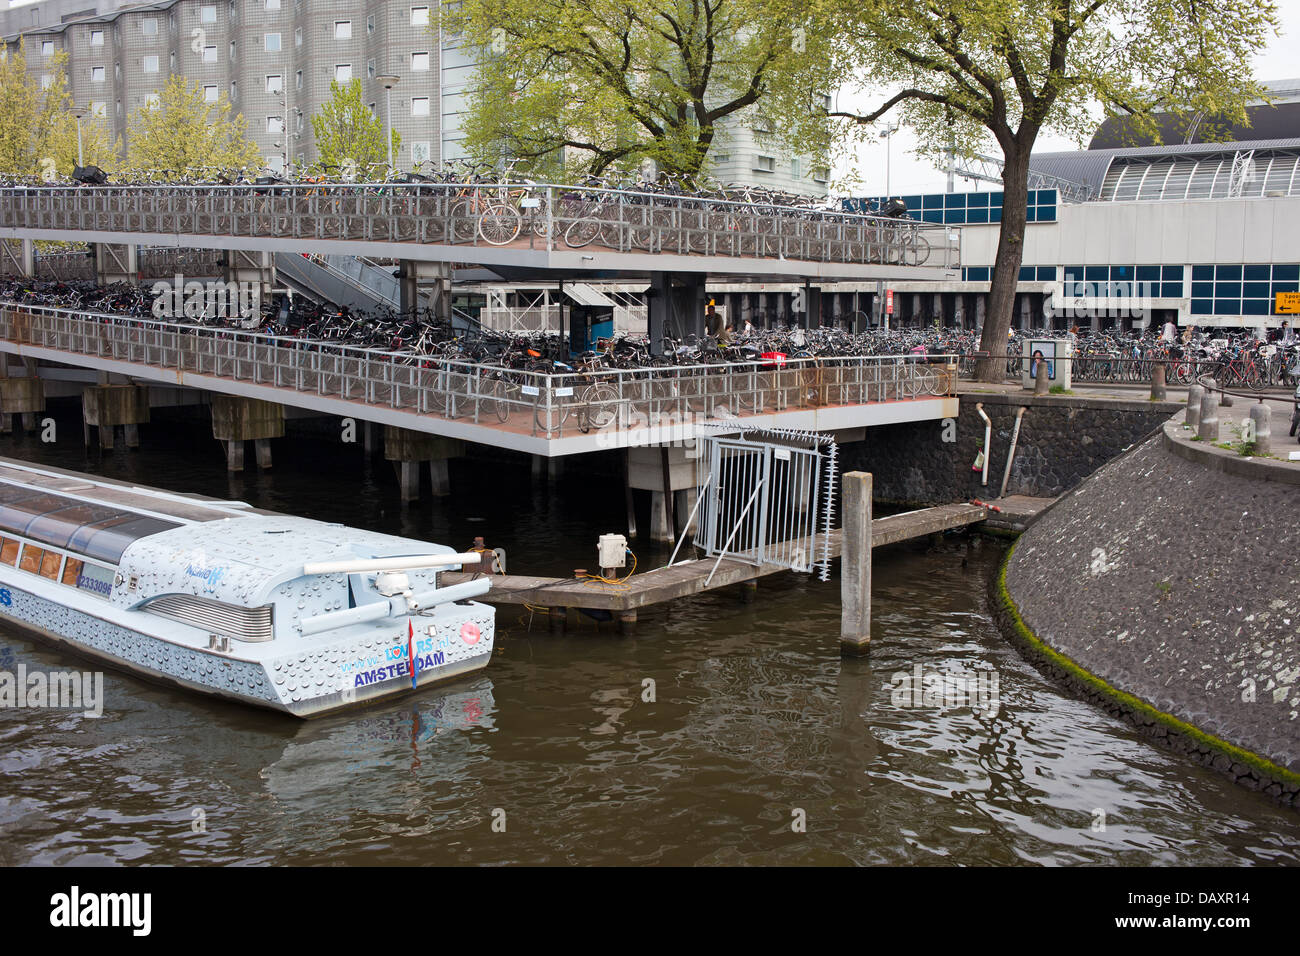 Large multi-level bike parking in Amsterdam, Netherlands, next to the Central Station. - Stock Image